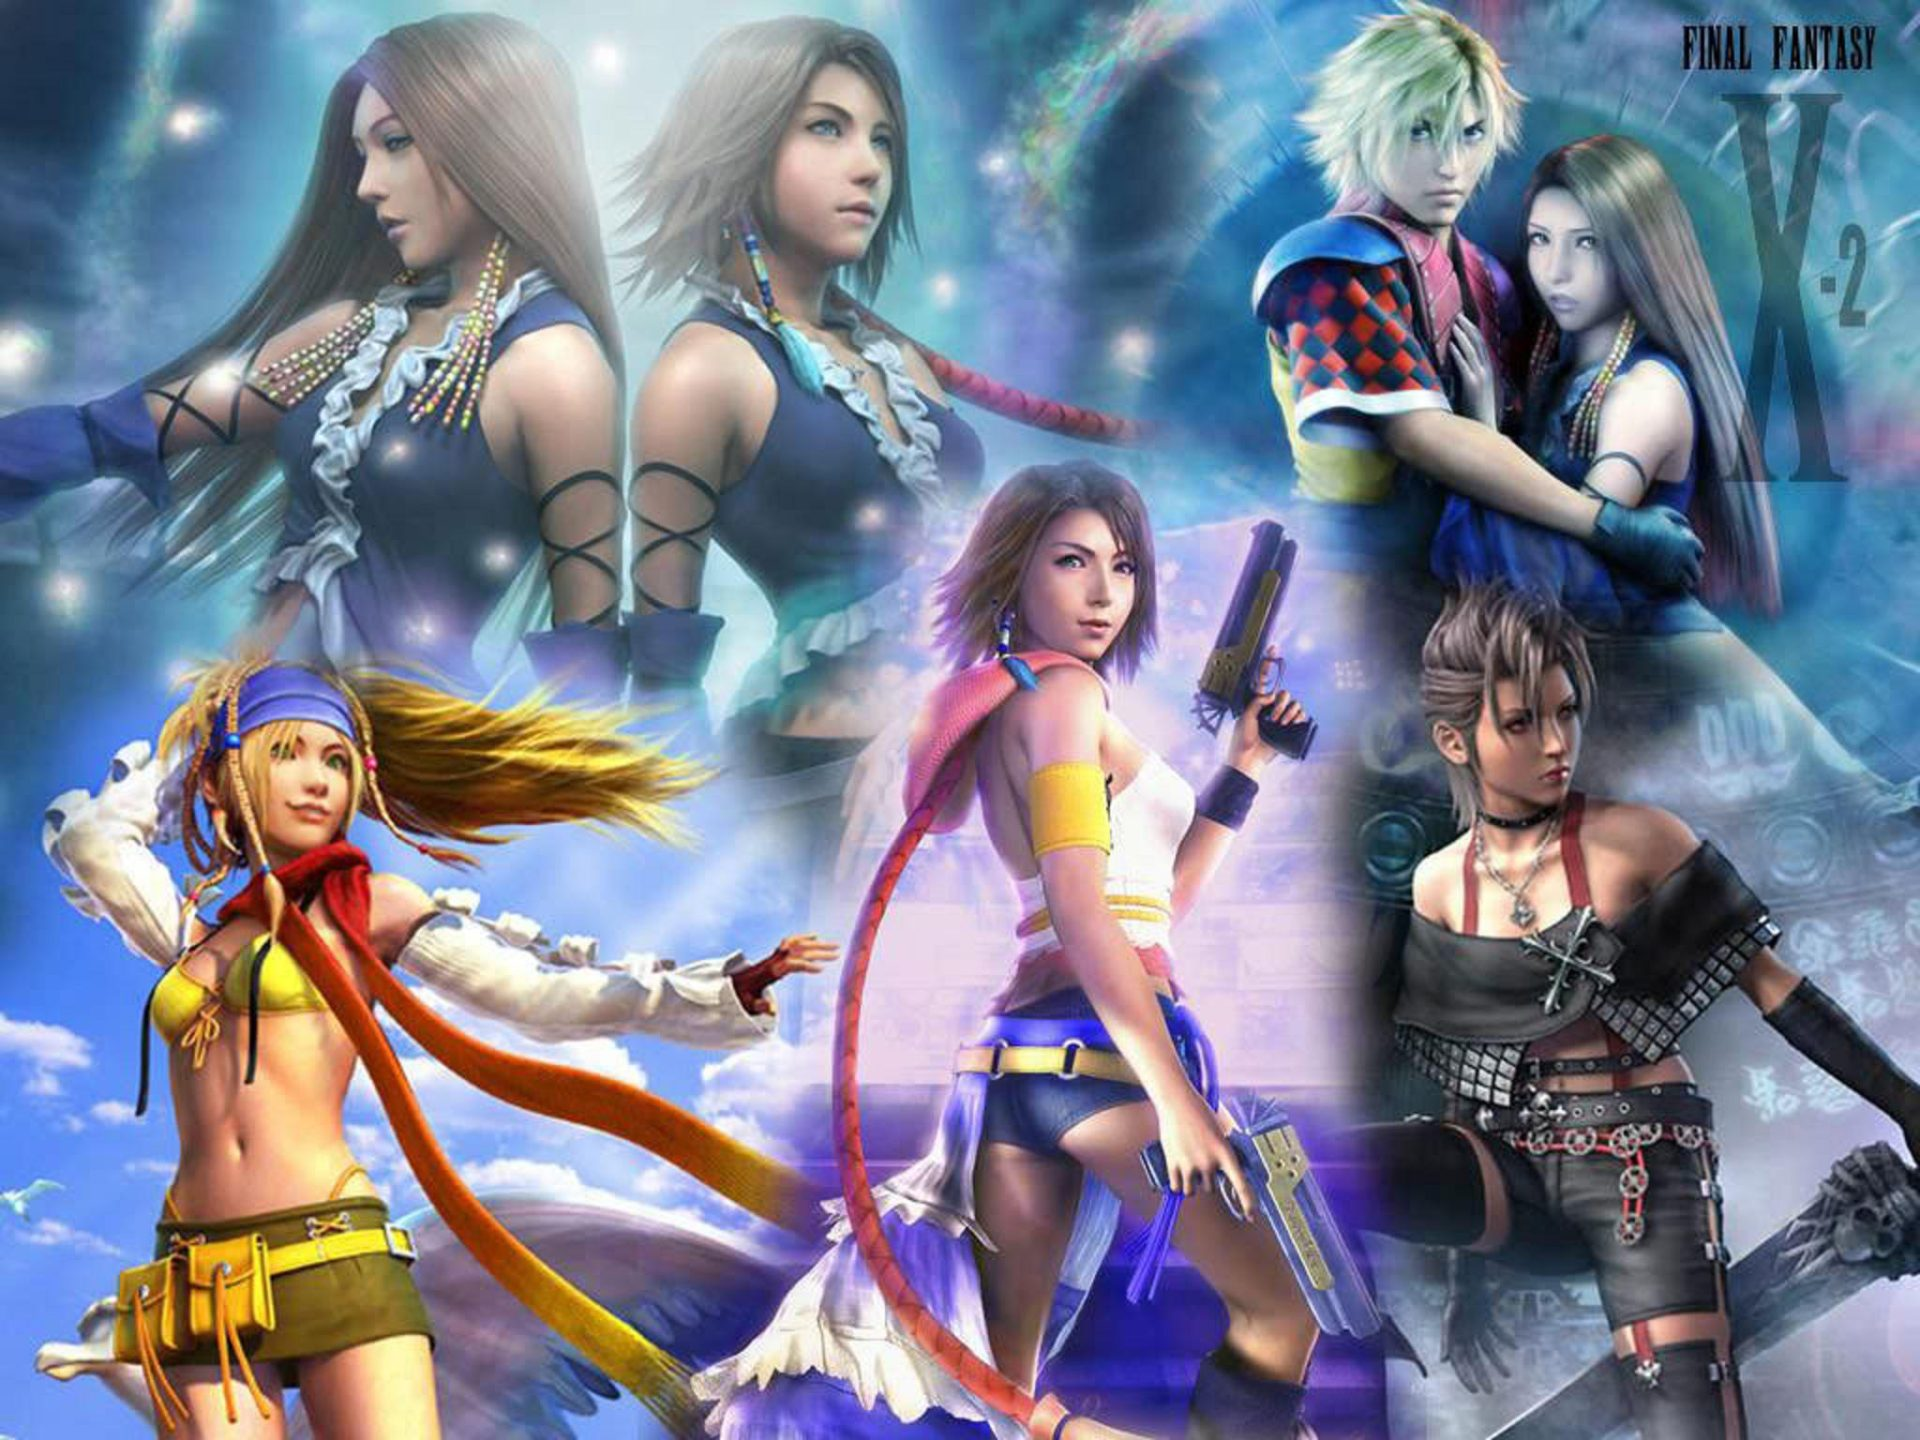 3d Animated Wallpapers For Pc Free Download Final Fantasy X 2 Series Yuna Games Video Hd Wallpaper